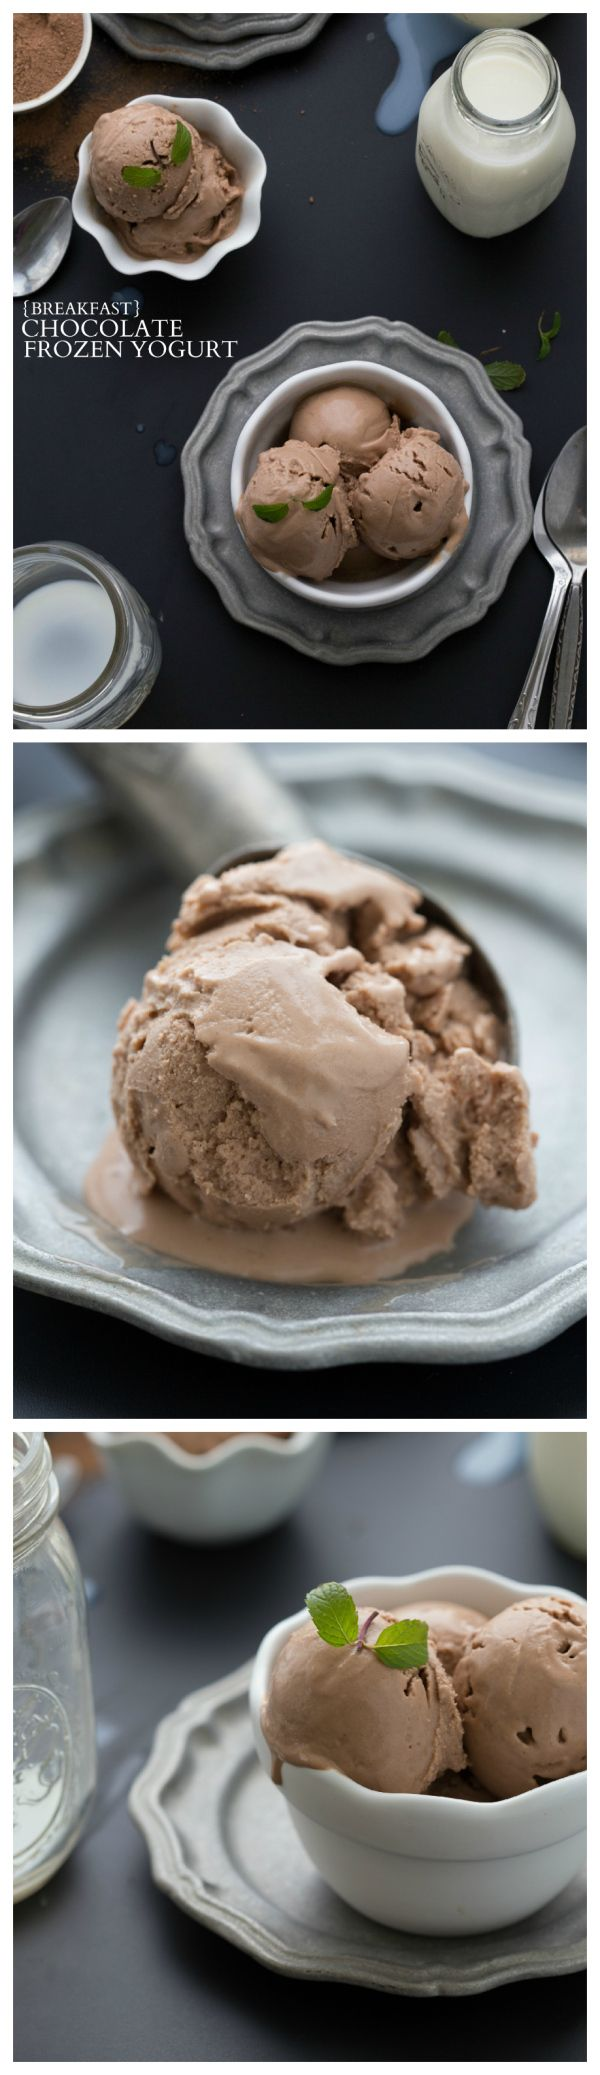 Breakfast Chocolate Frozen Yogurt I Simple, easy, and healthy! Only 5 ingredients! #cleaneating #vitamix Get FREE ground shipping on any blender purchase at Vitamix.com with code 06-006499